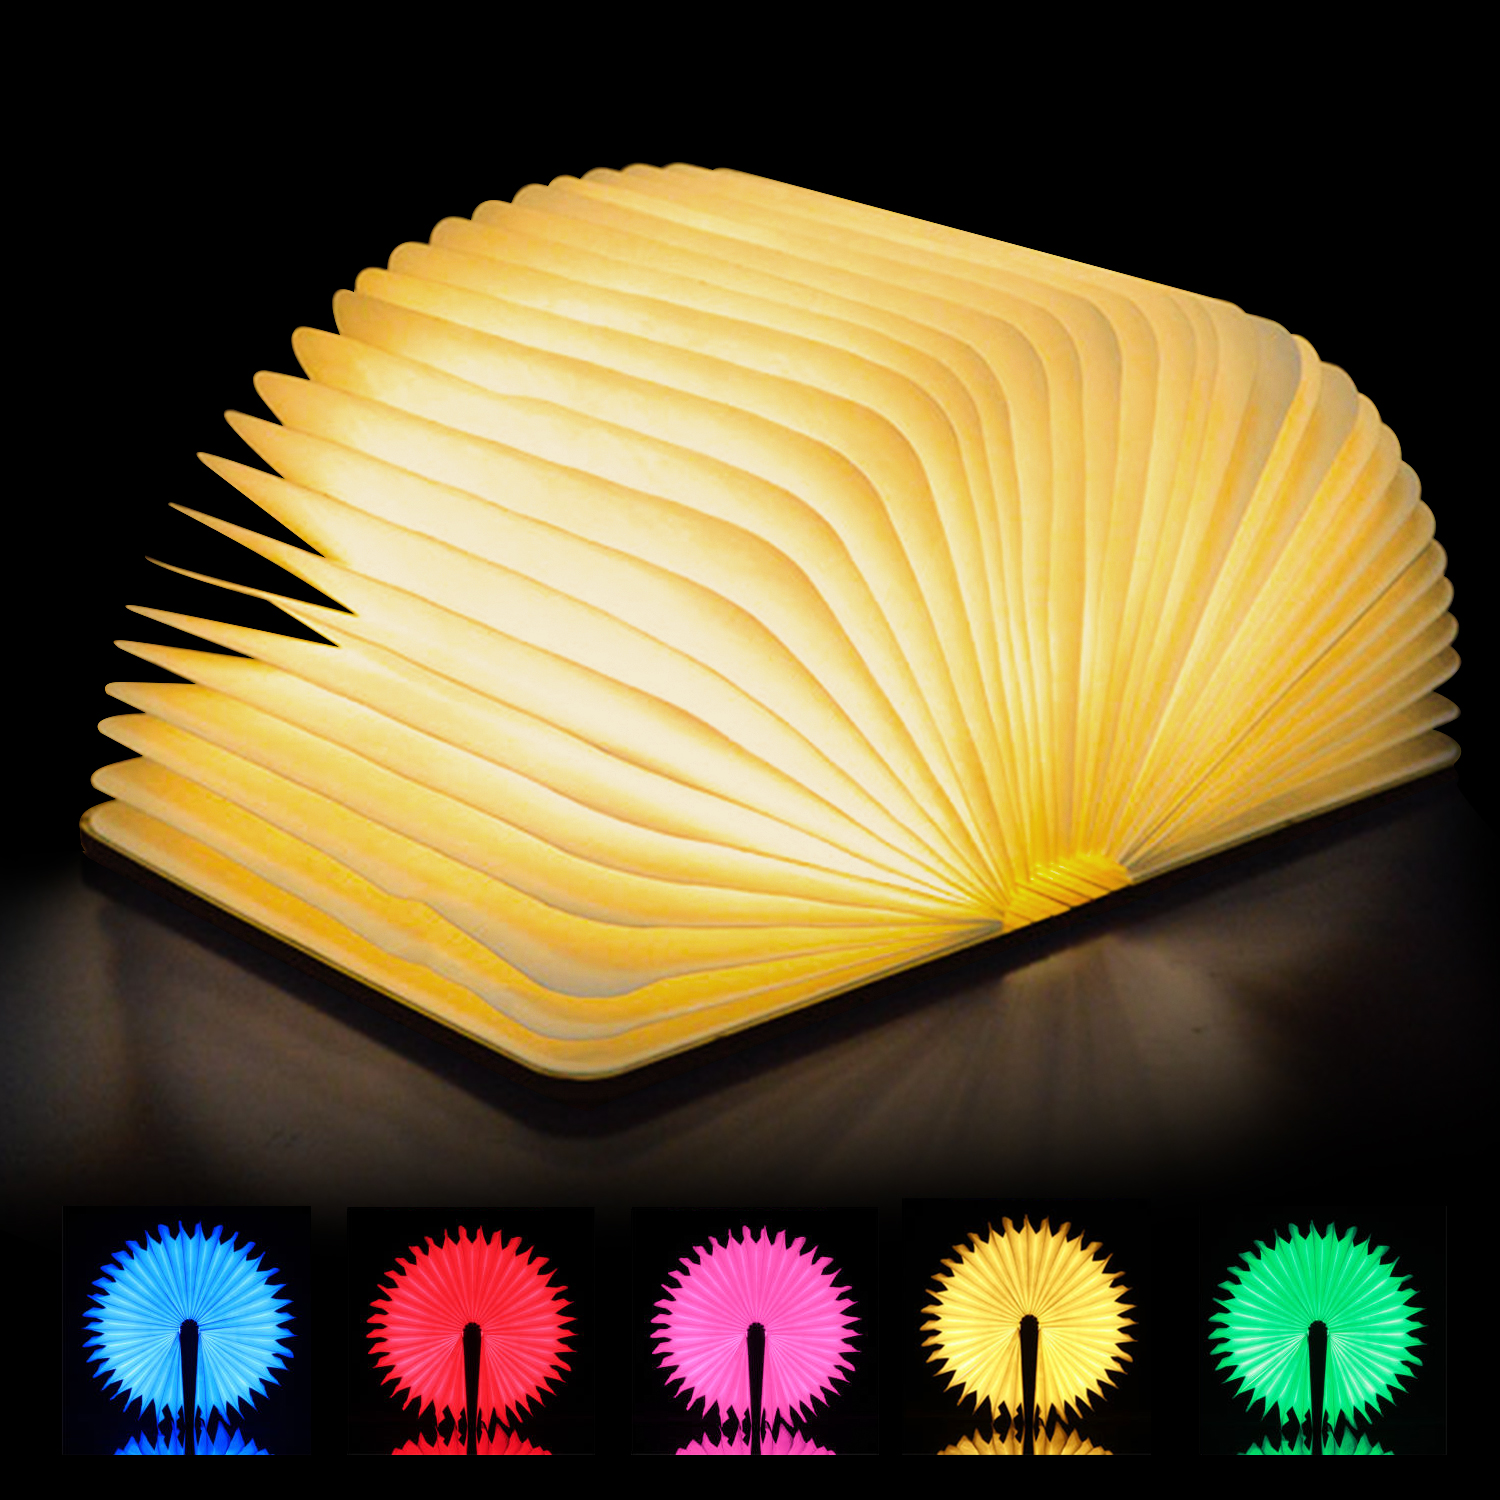 Kohree Art Led Book Lamp Light USB Rechargeable Foldable Wooden Night Light Valentine Birthday Christmas Gift for Family Friend